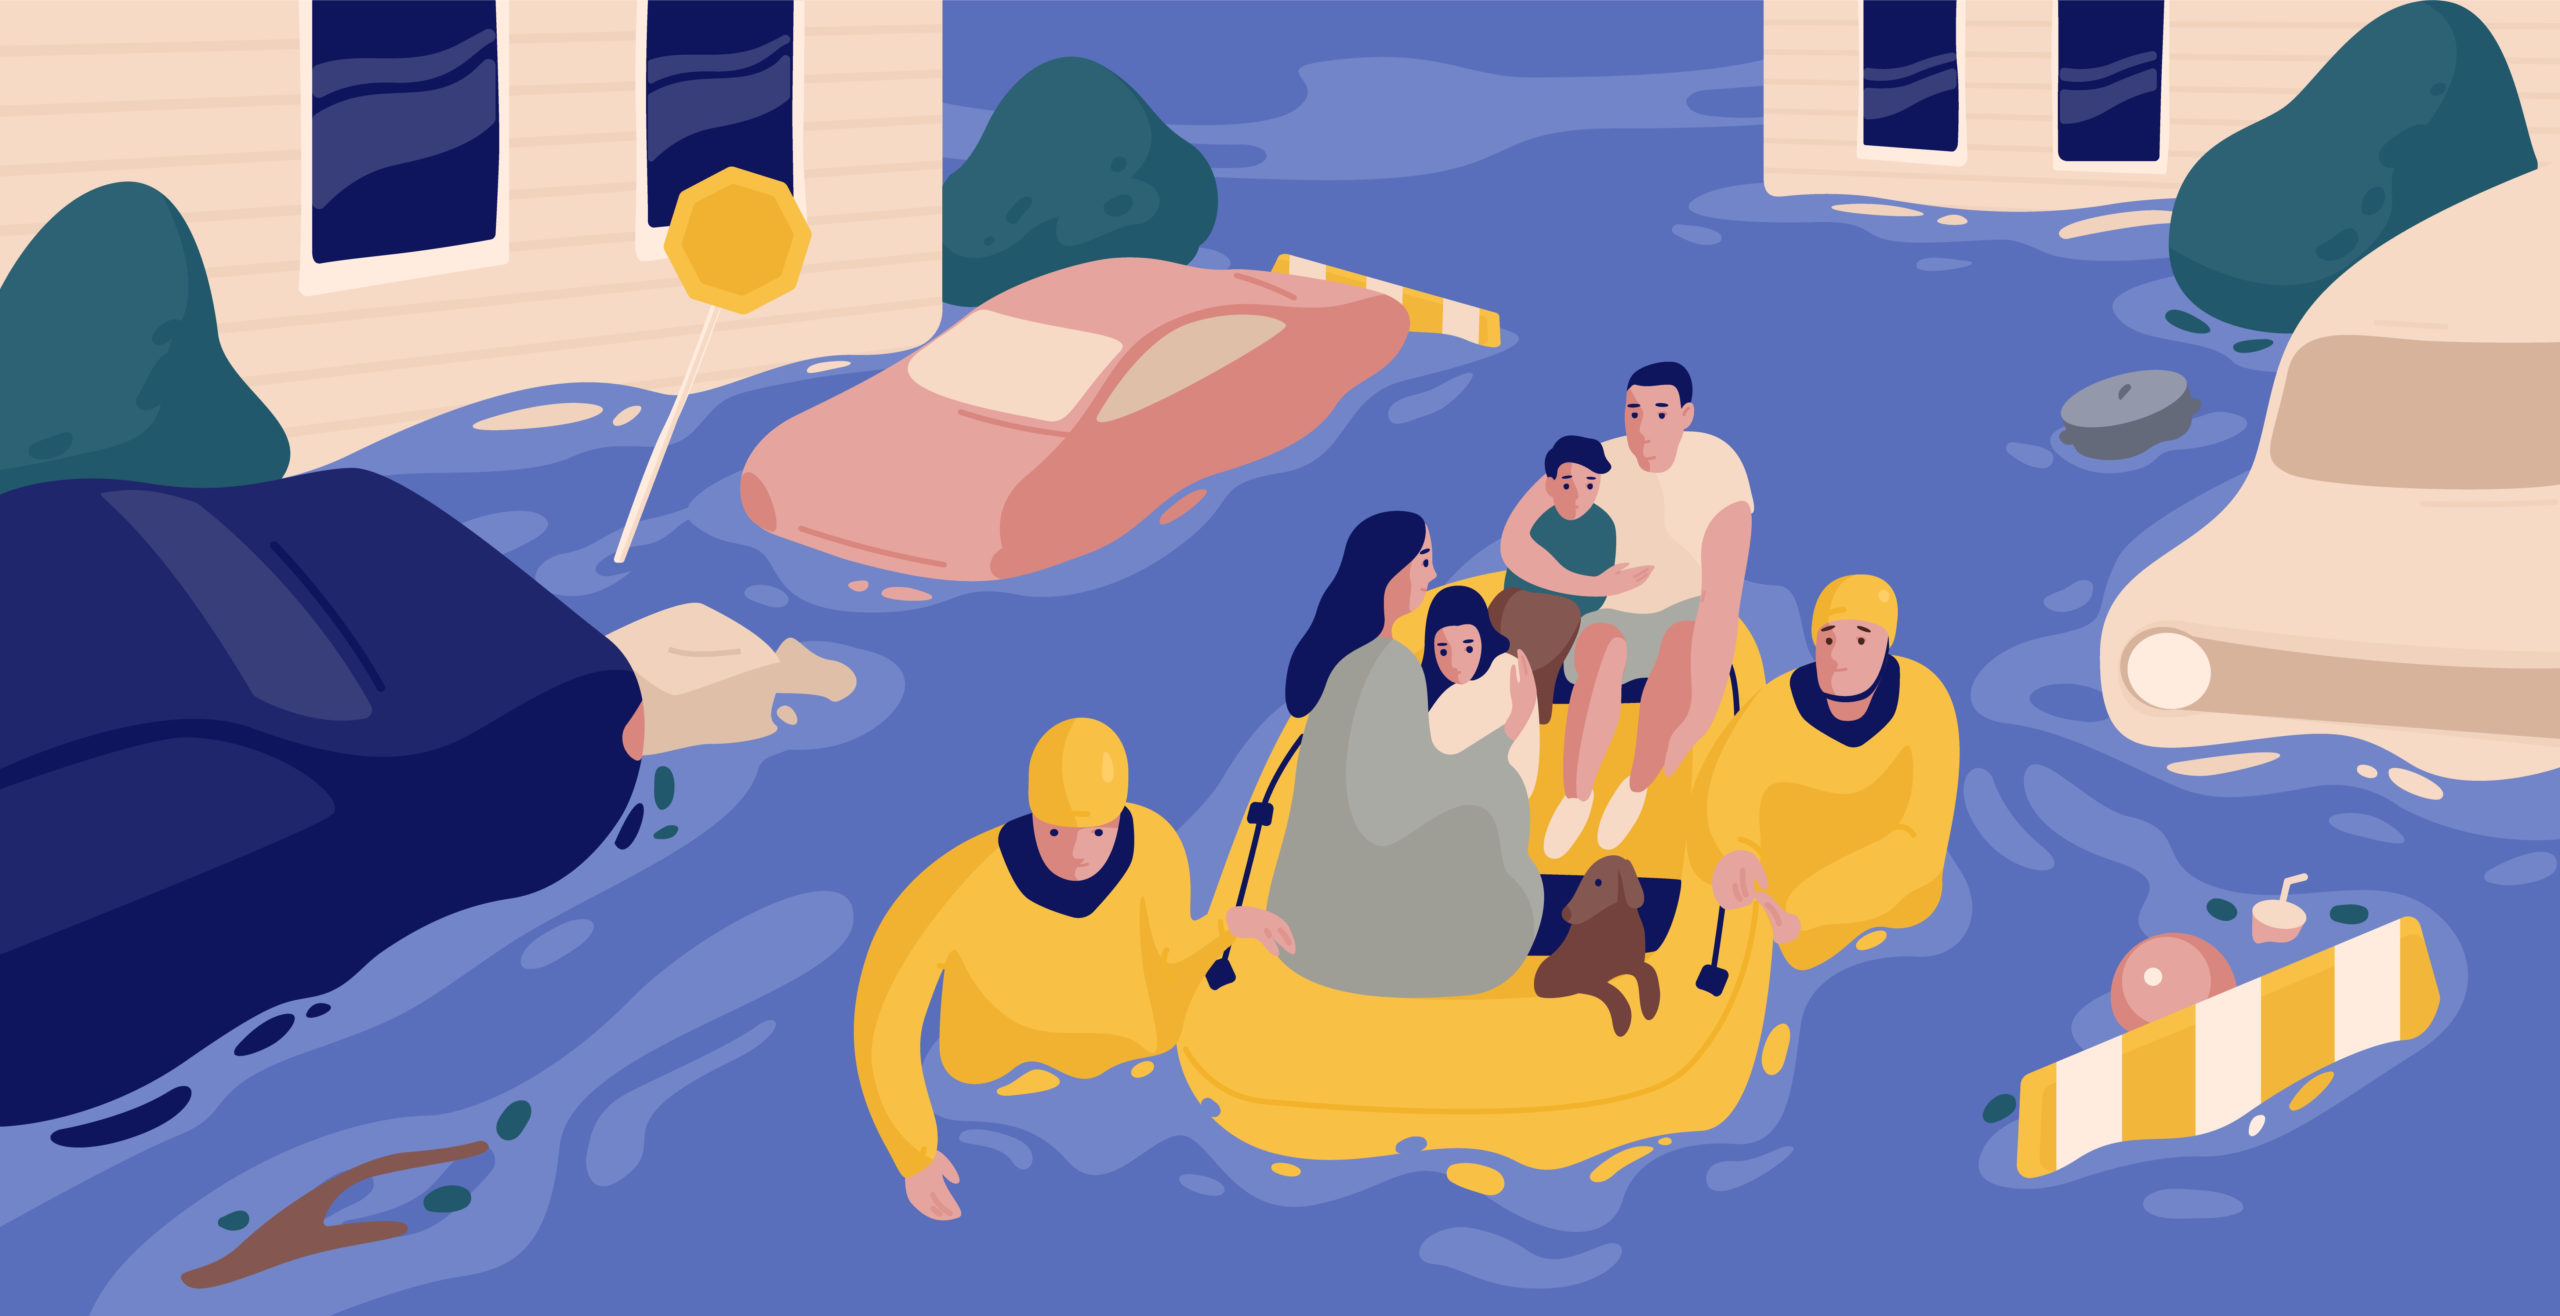 rescuers helping flood victims in inflatable boat